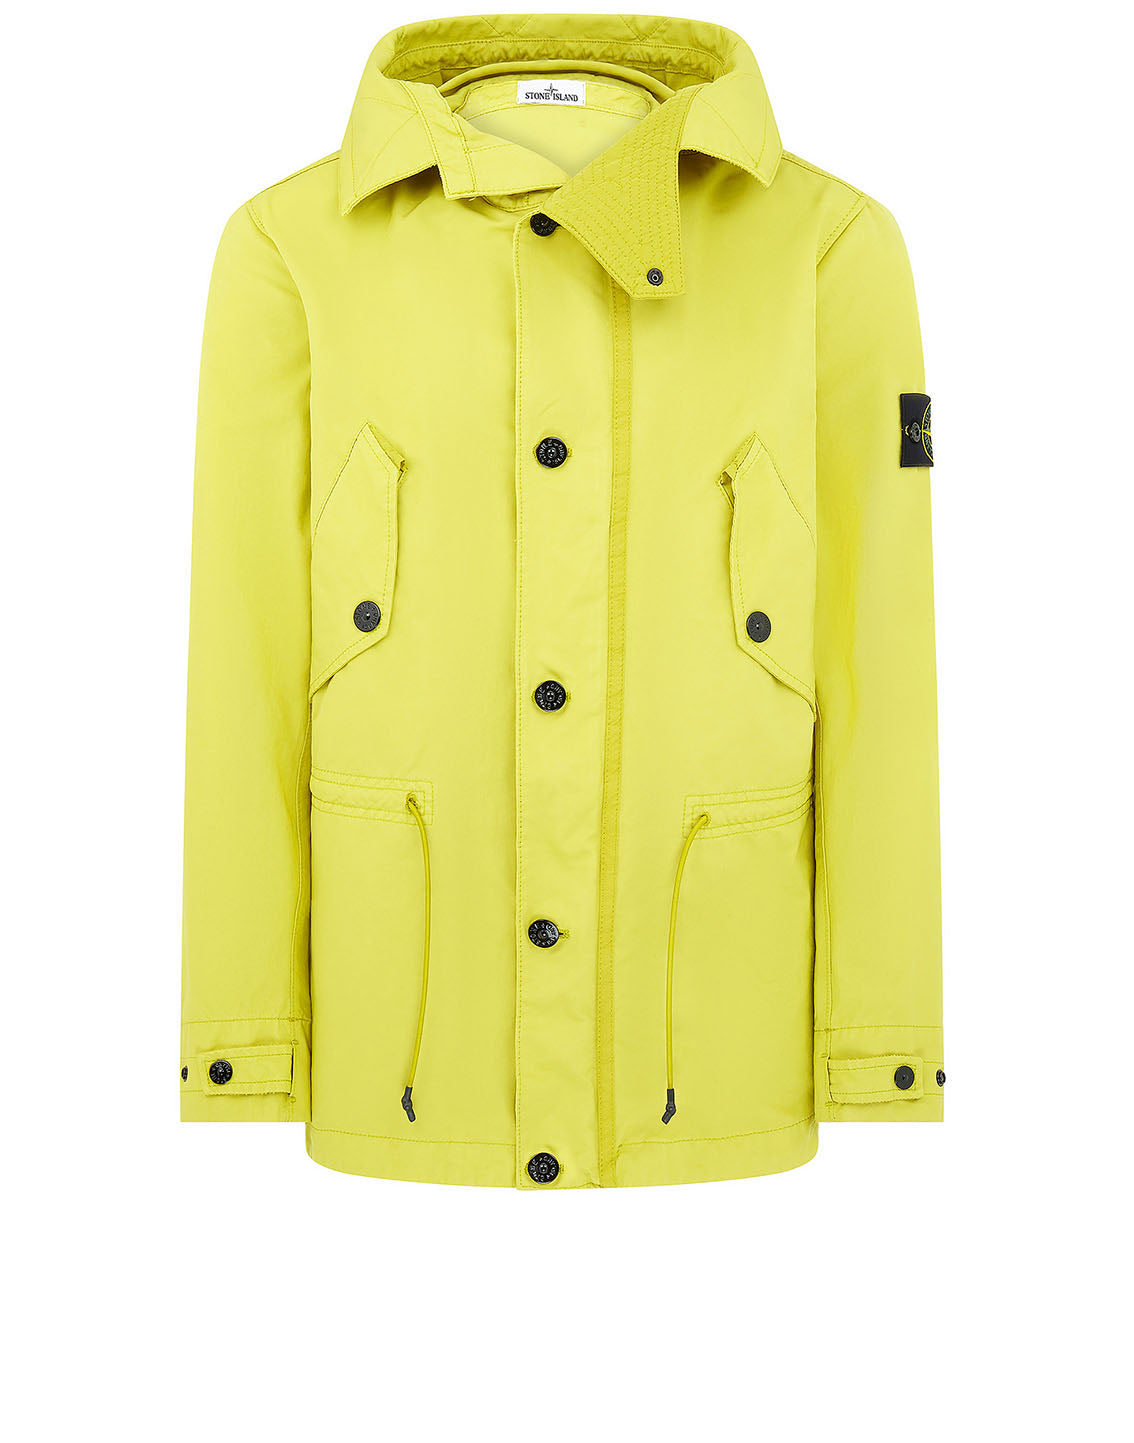 44449 DAVID-TC Jacket in Yellow